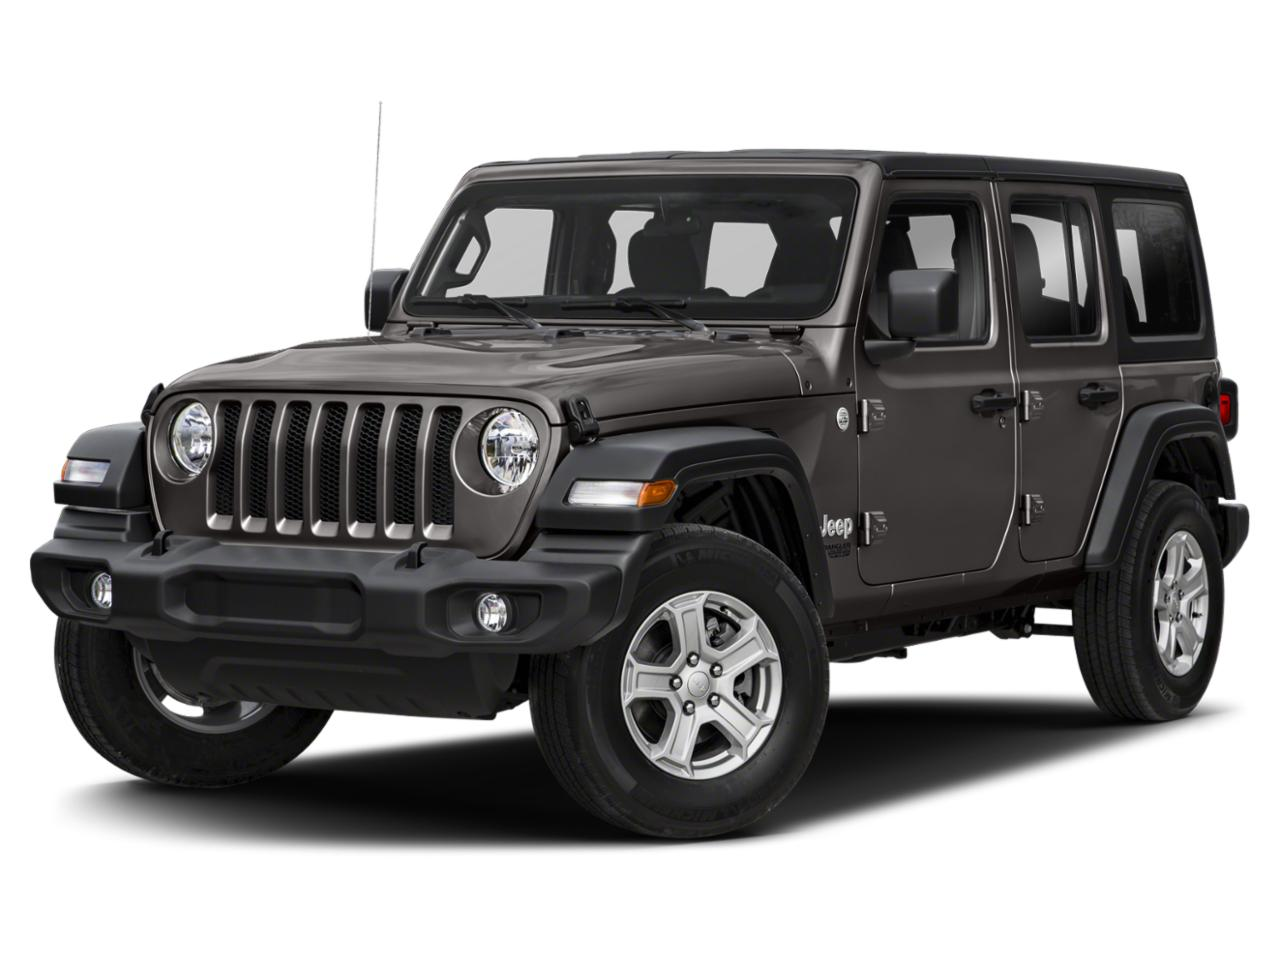 2018 Jeep Wrangler Unlimited Vehicle Photo in Pittsburg, CA 94565